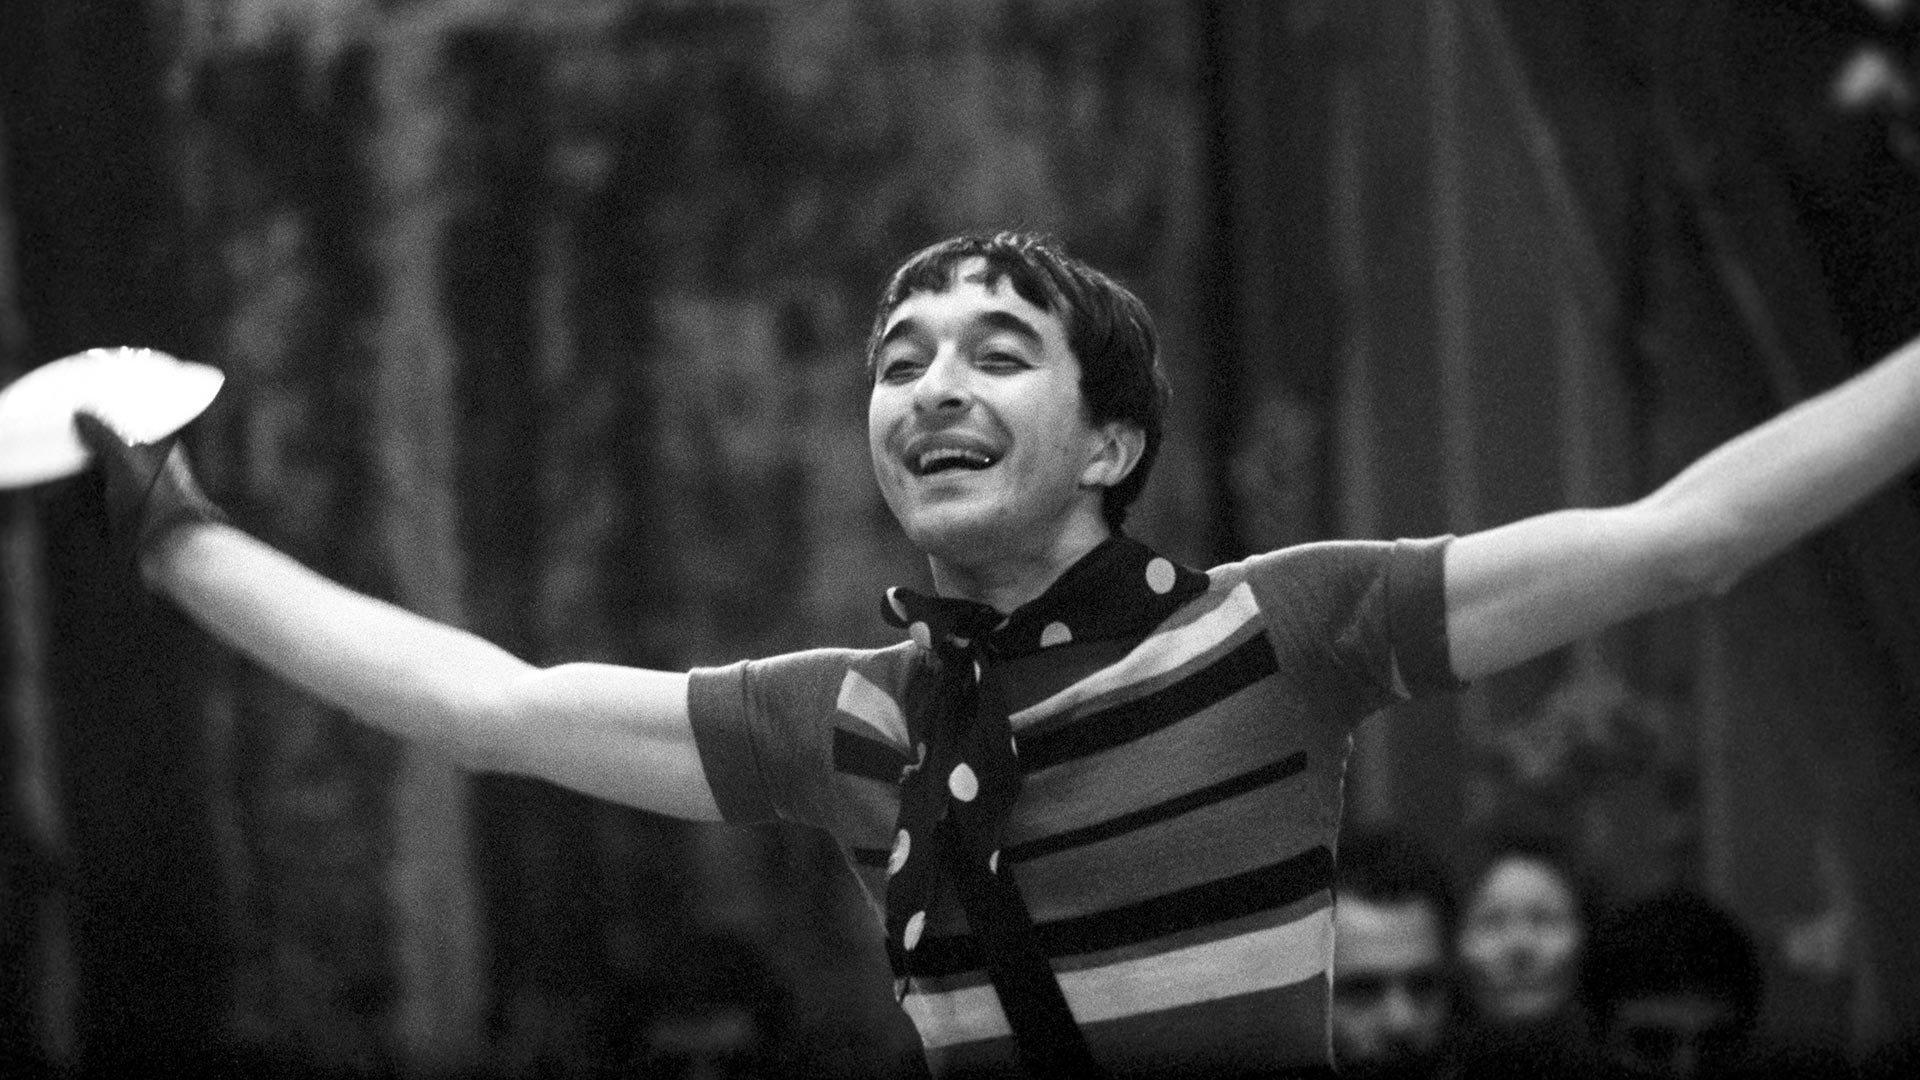 In 1964, he took home the first prize at the European Clown Competition in Prague.